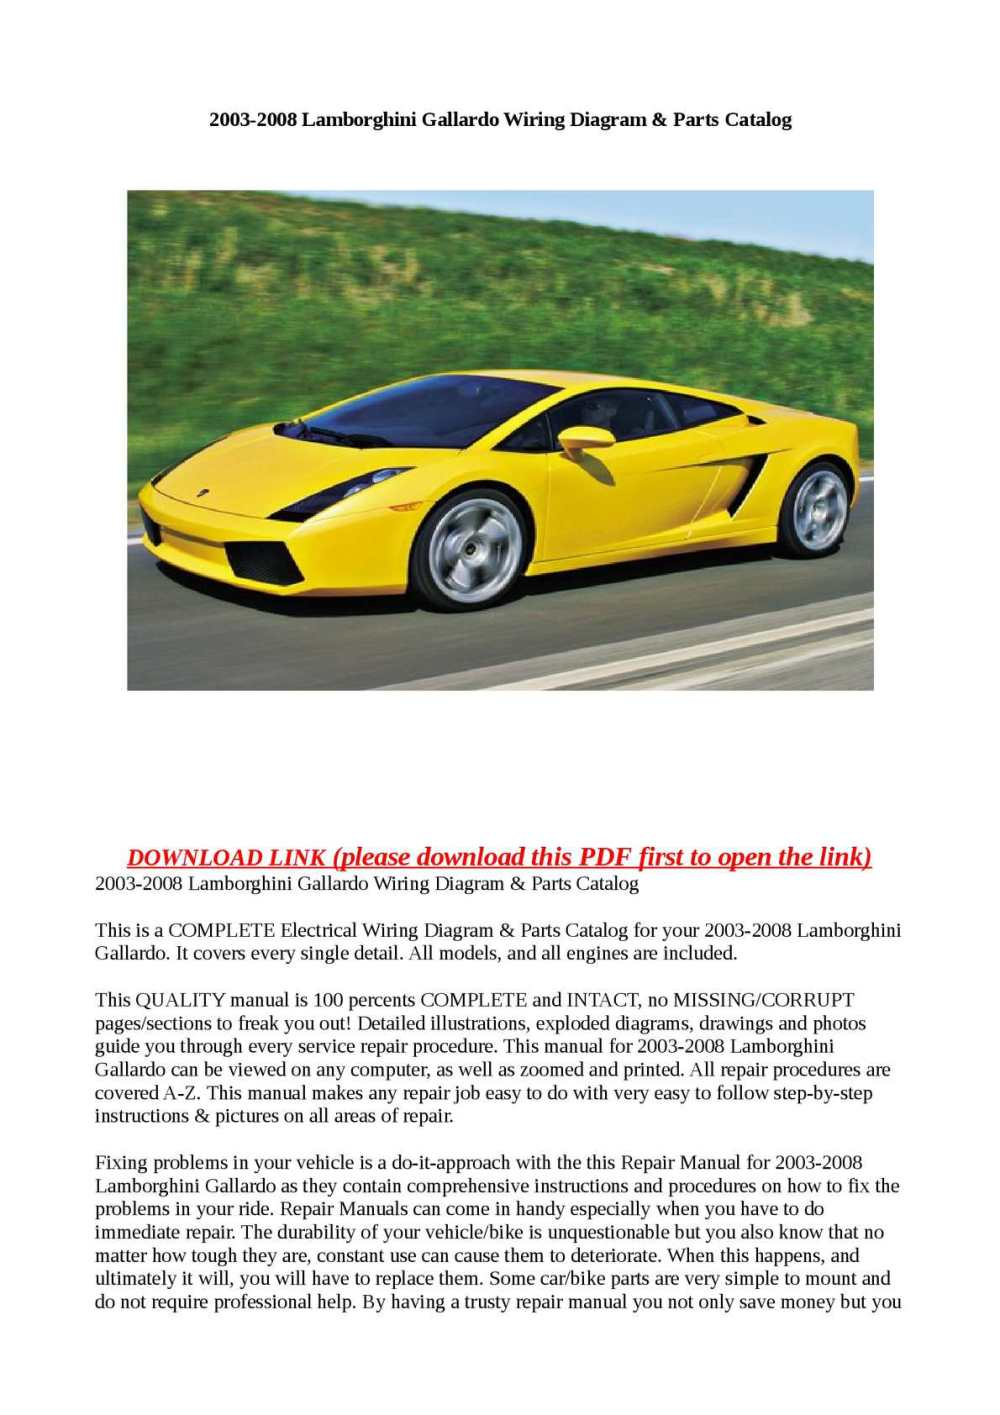 medium resolution of calam o 2003 2008 lamborghini gallardo wiring diagram parts catalog lamborghini murcielago wiring diagram lamborghini wiring diagram